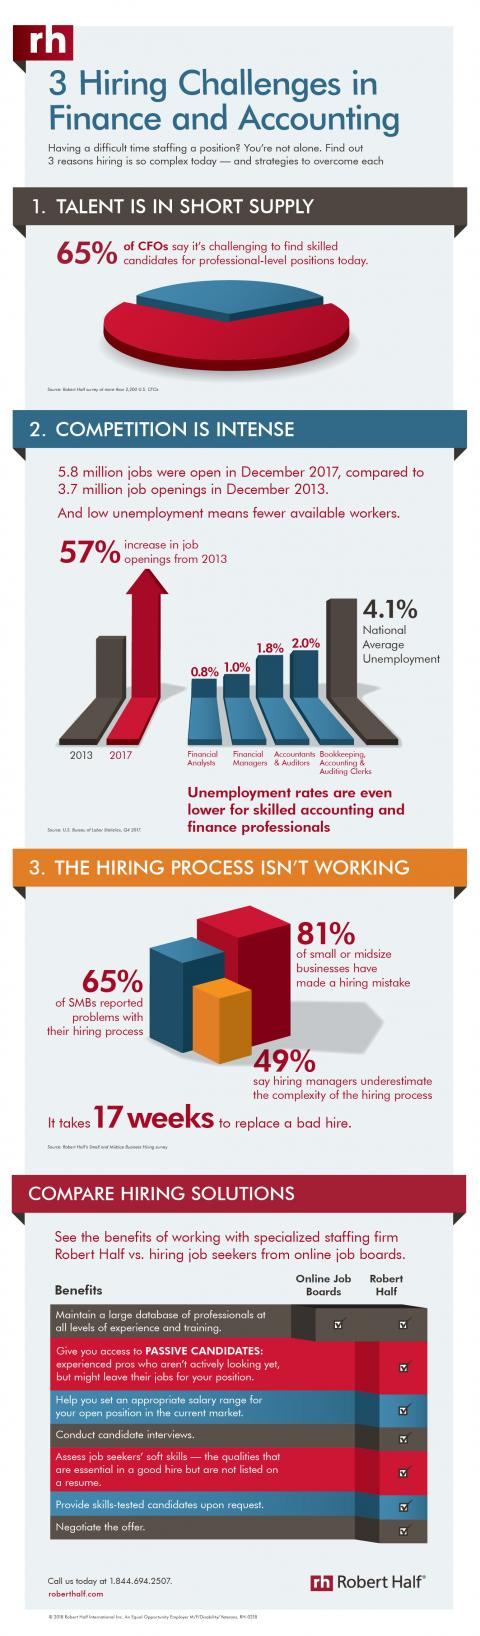 3 Hiring Challenges in Finance and Accounting infographic